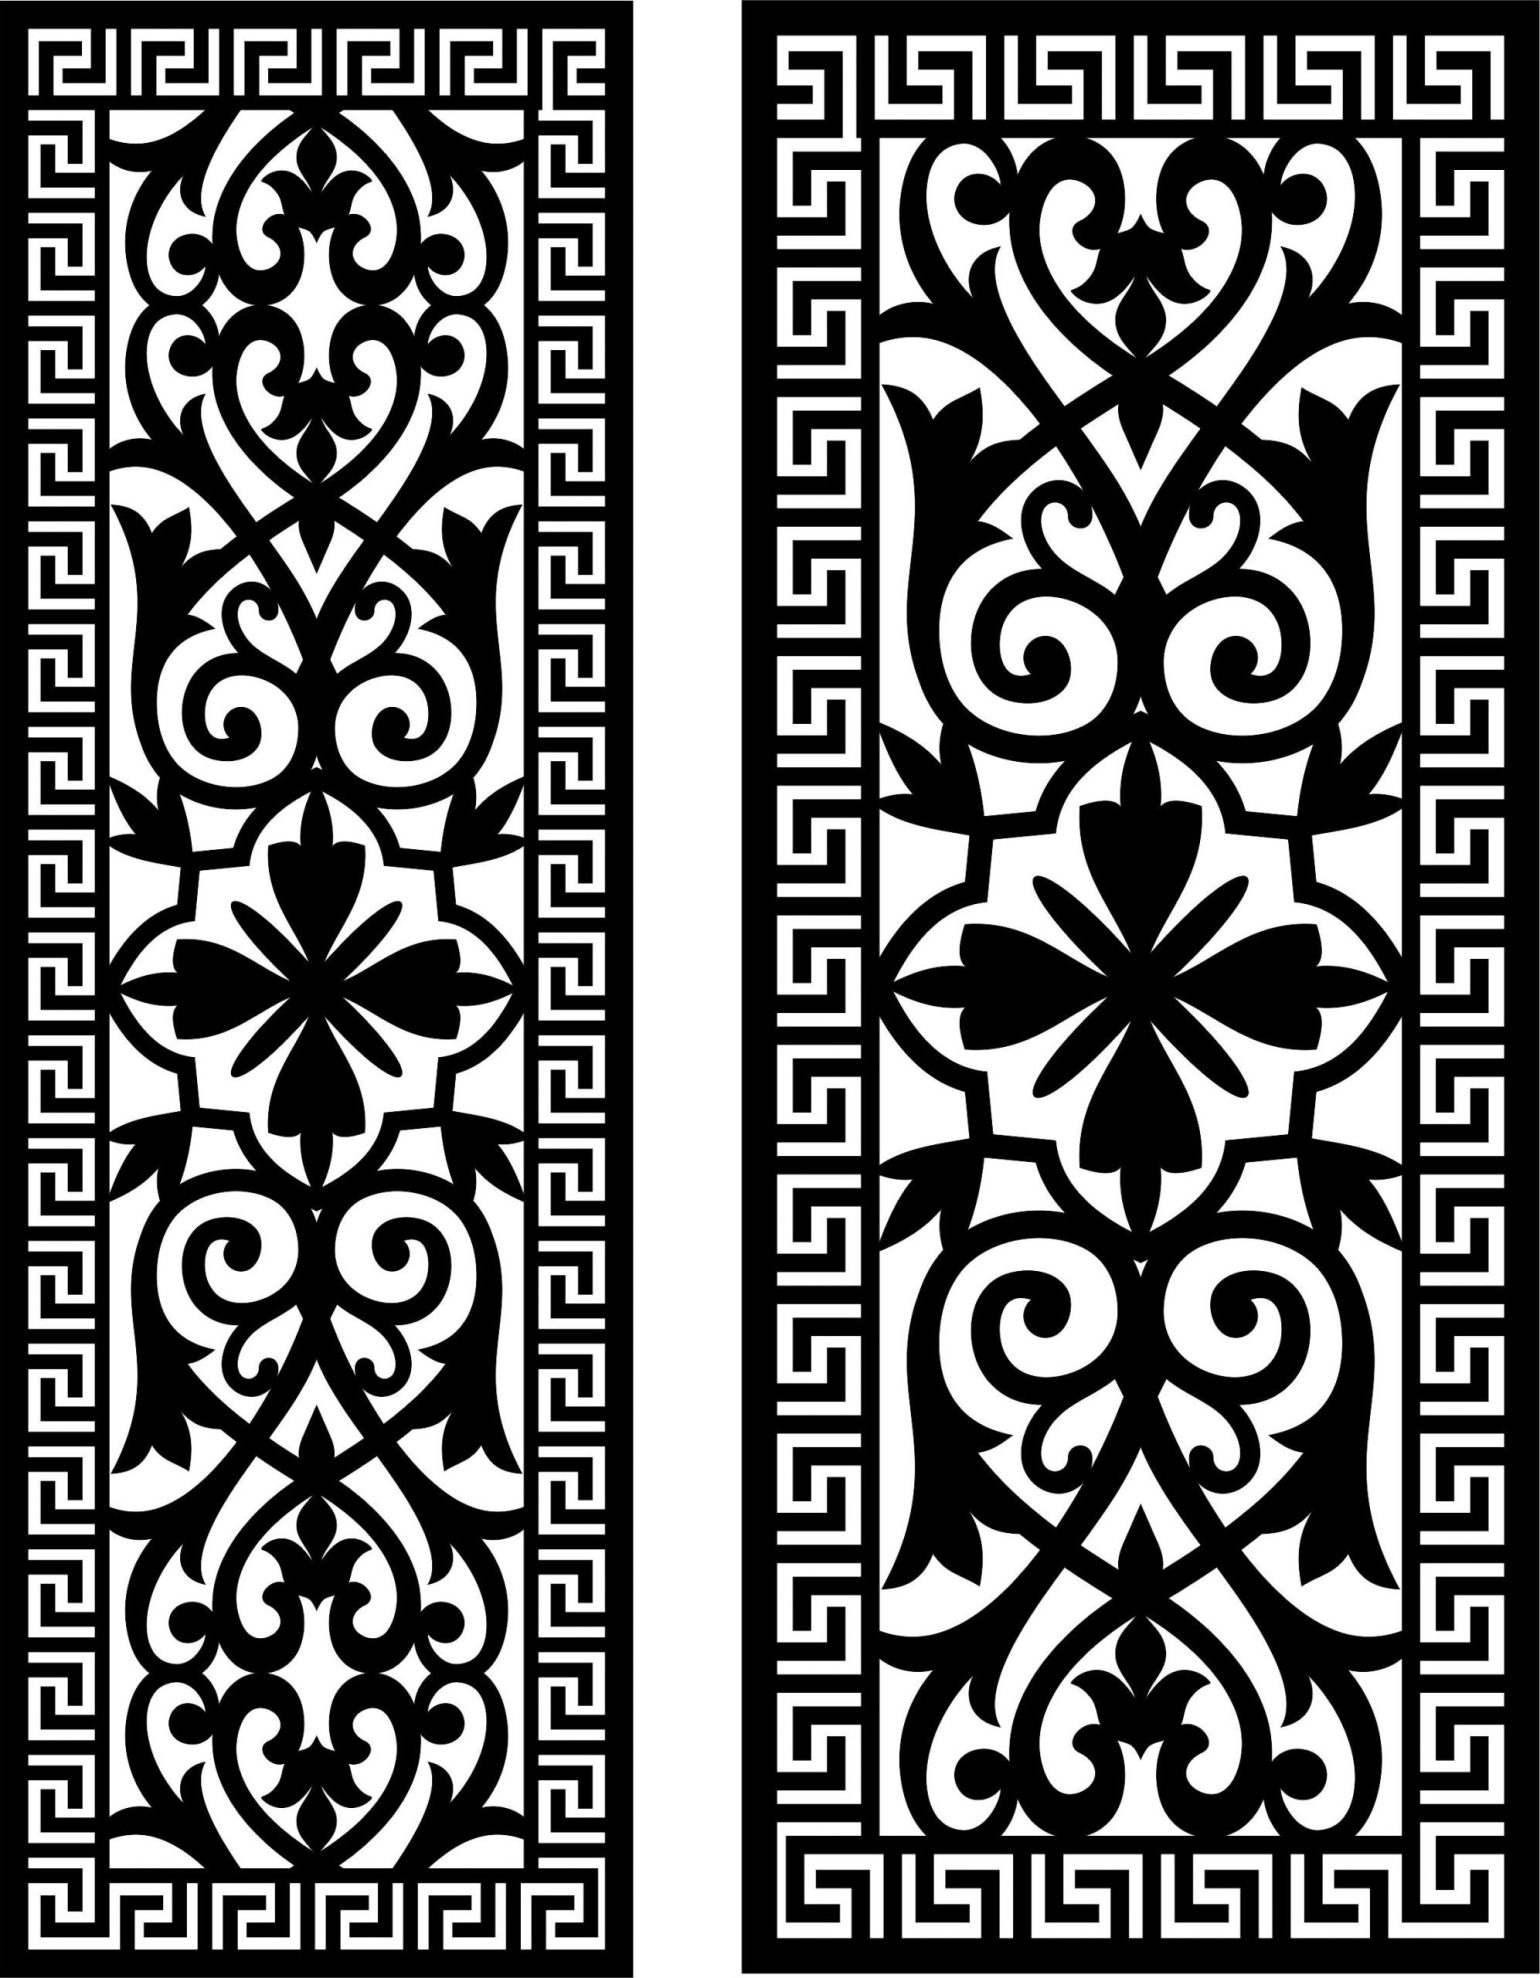 Decorative Screen Patterns For Laser Cutting 26 Free DXF File